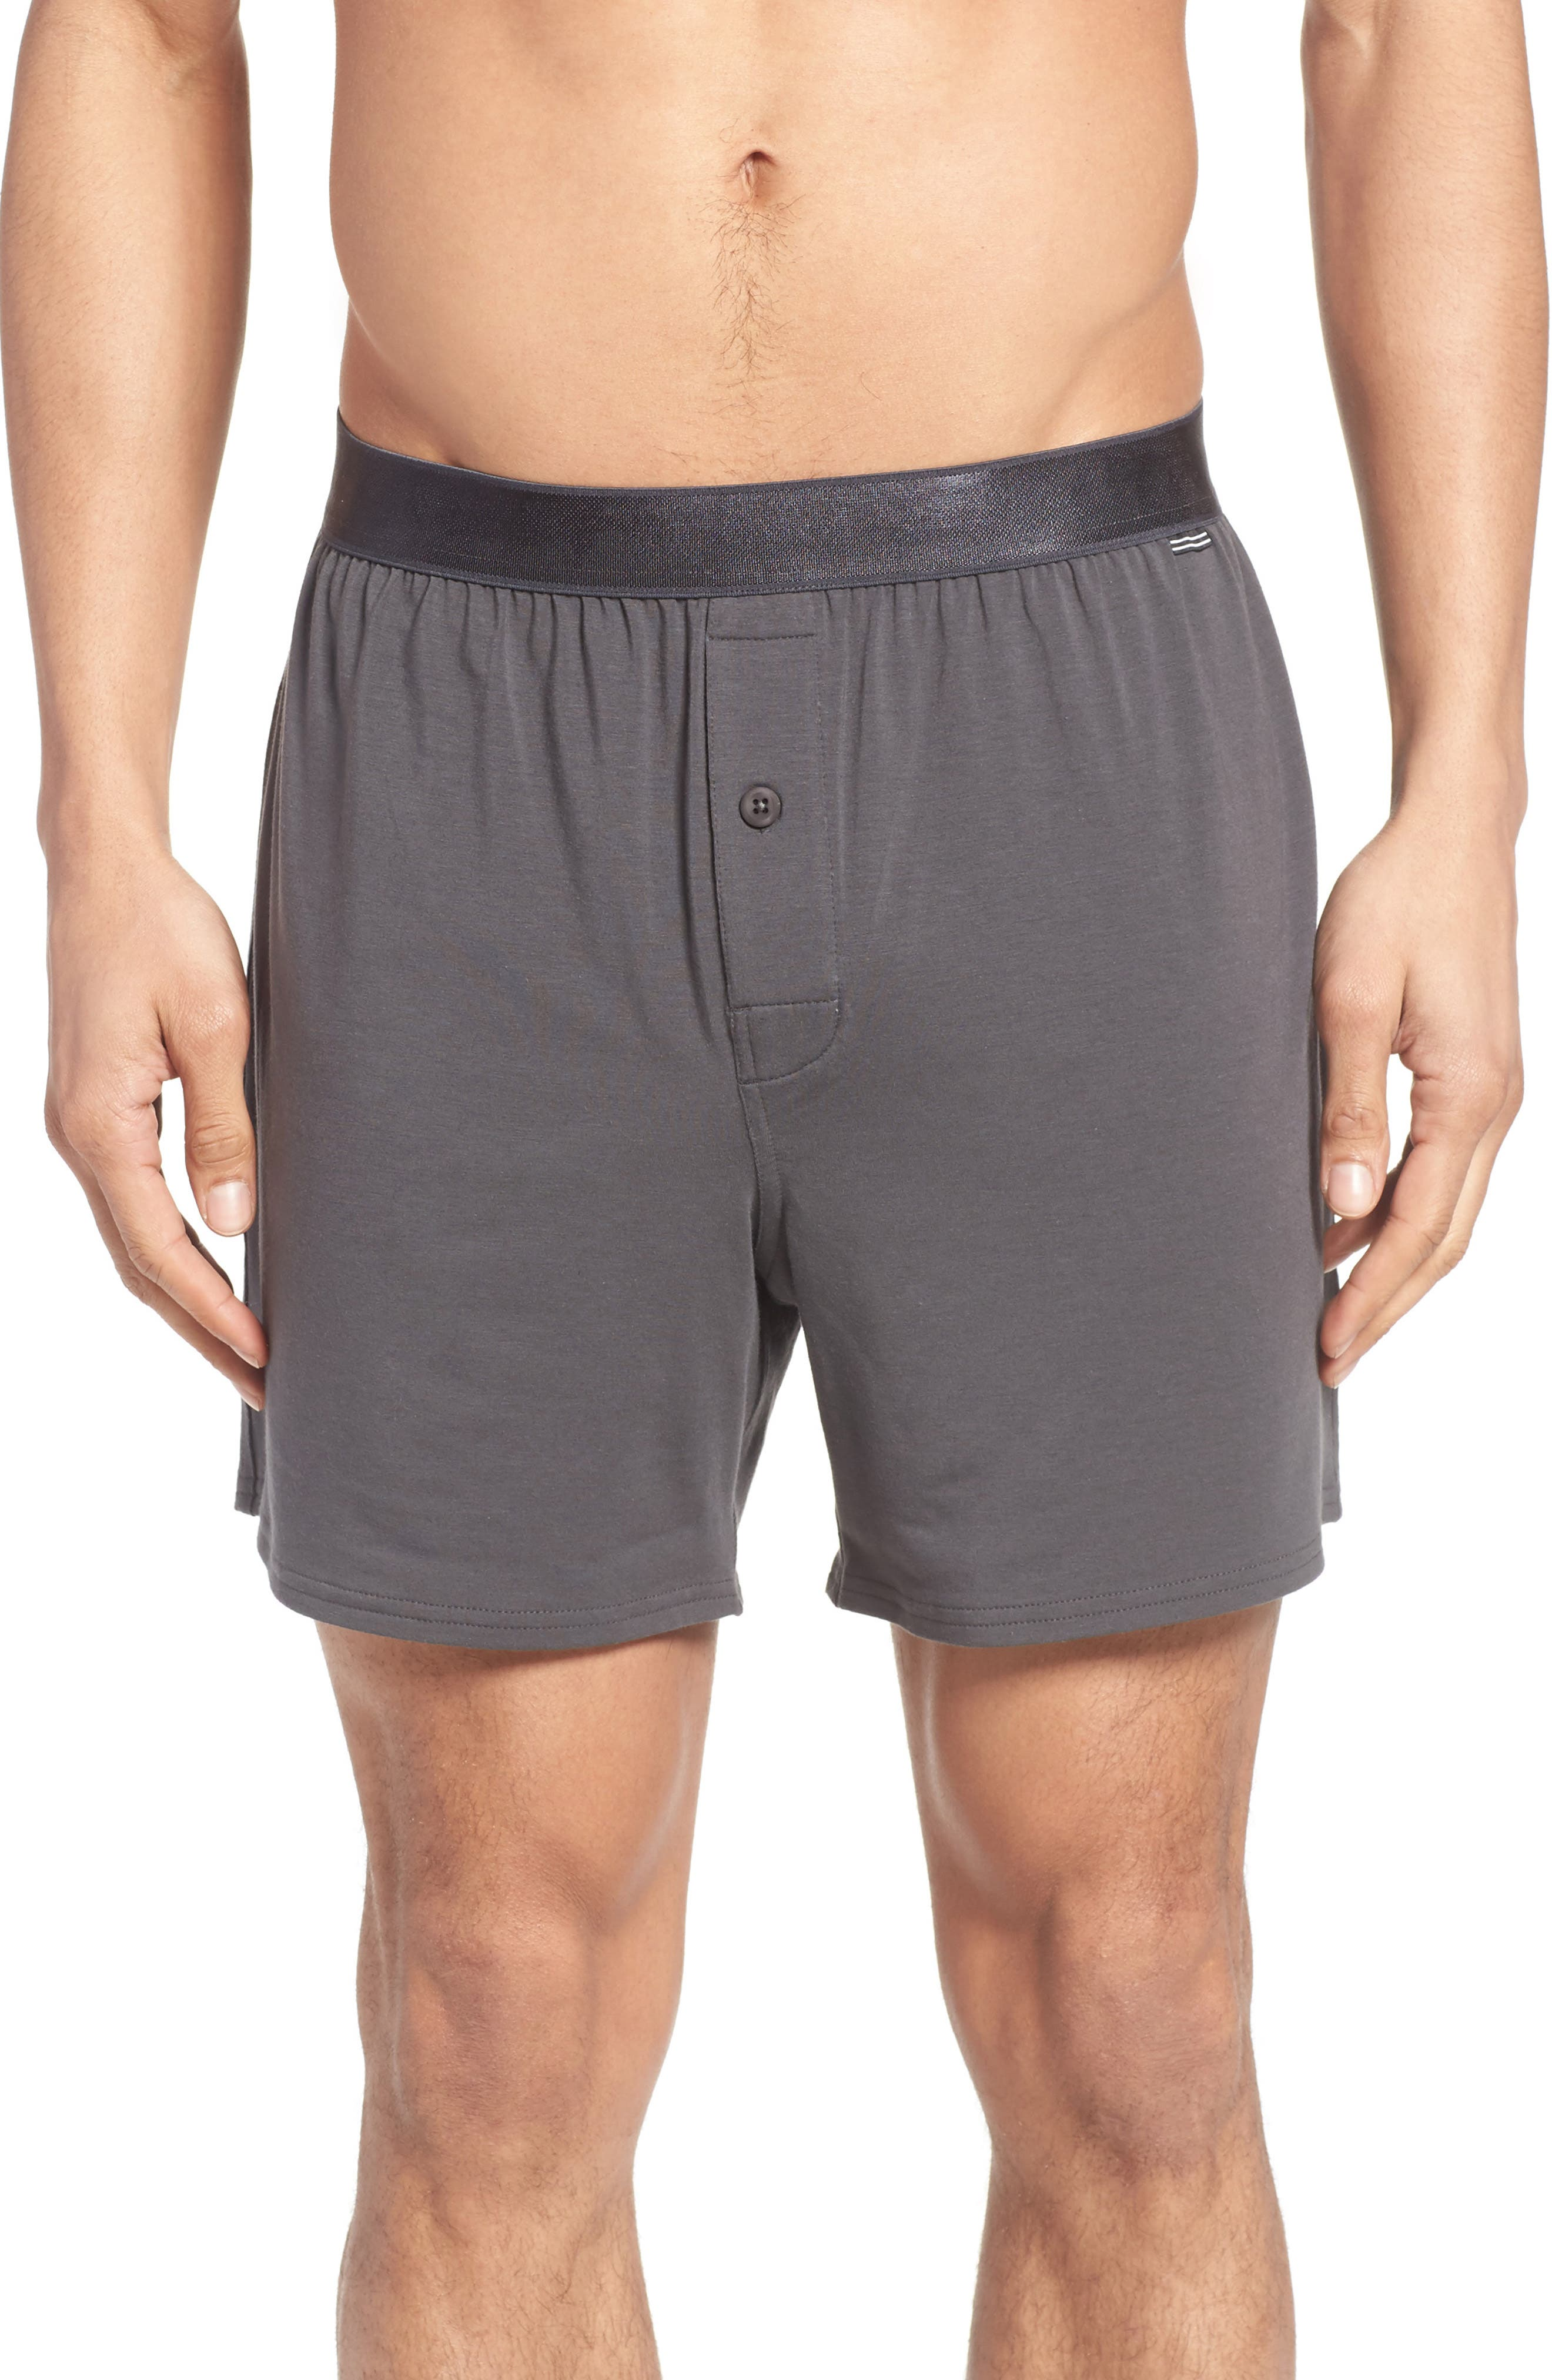 Alternate Image 1 Selected - Nordstrom Men's Shop Micro Modal Blend Knit Boxers